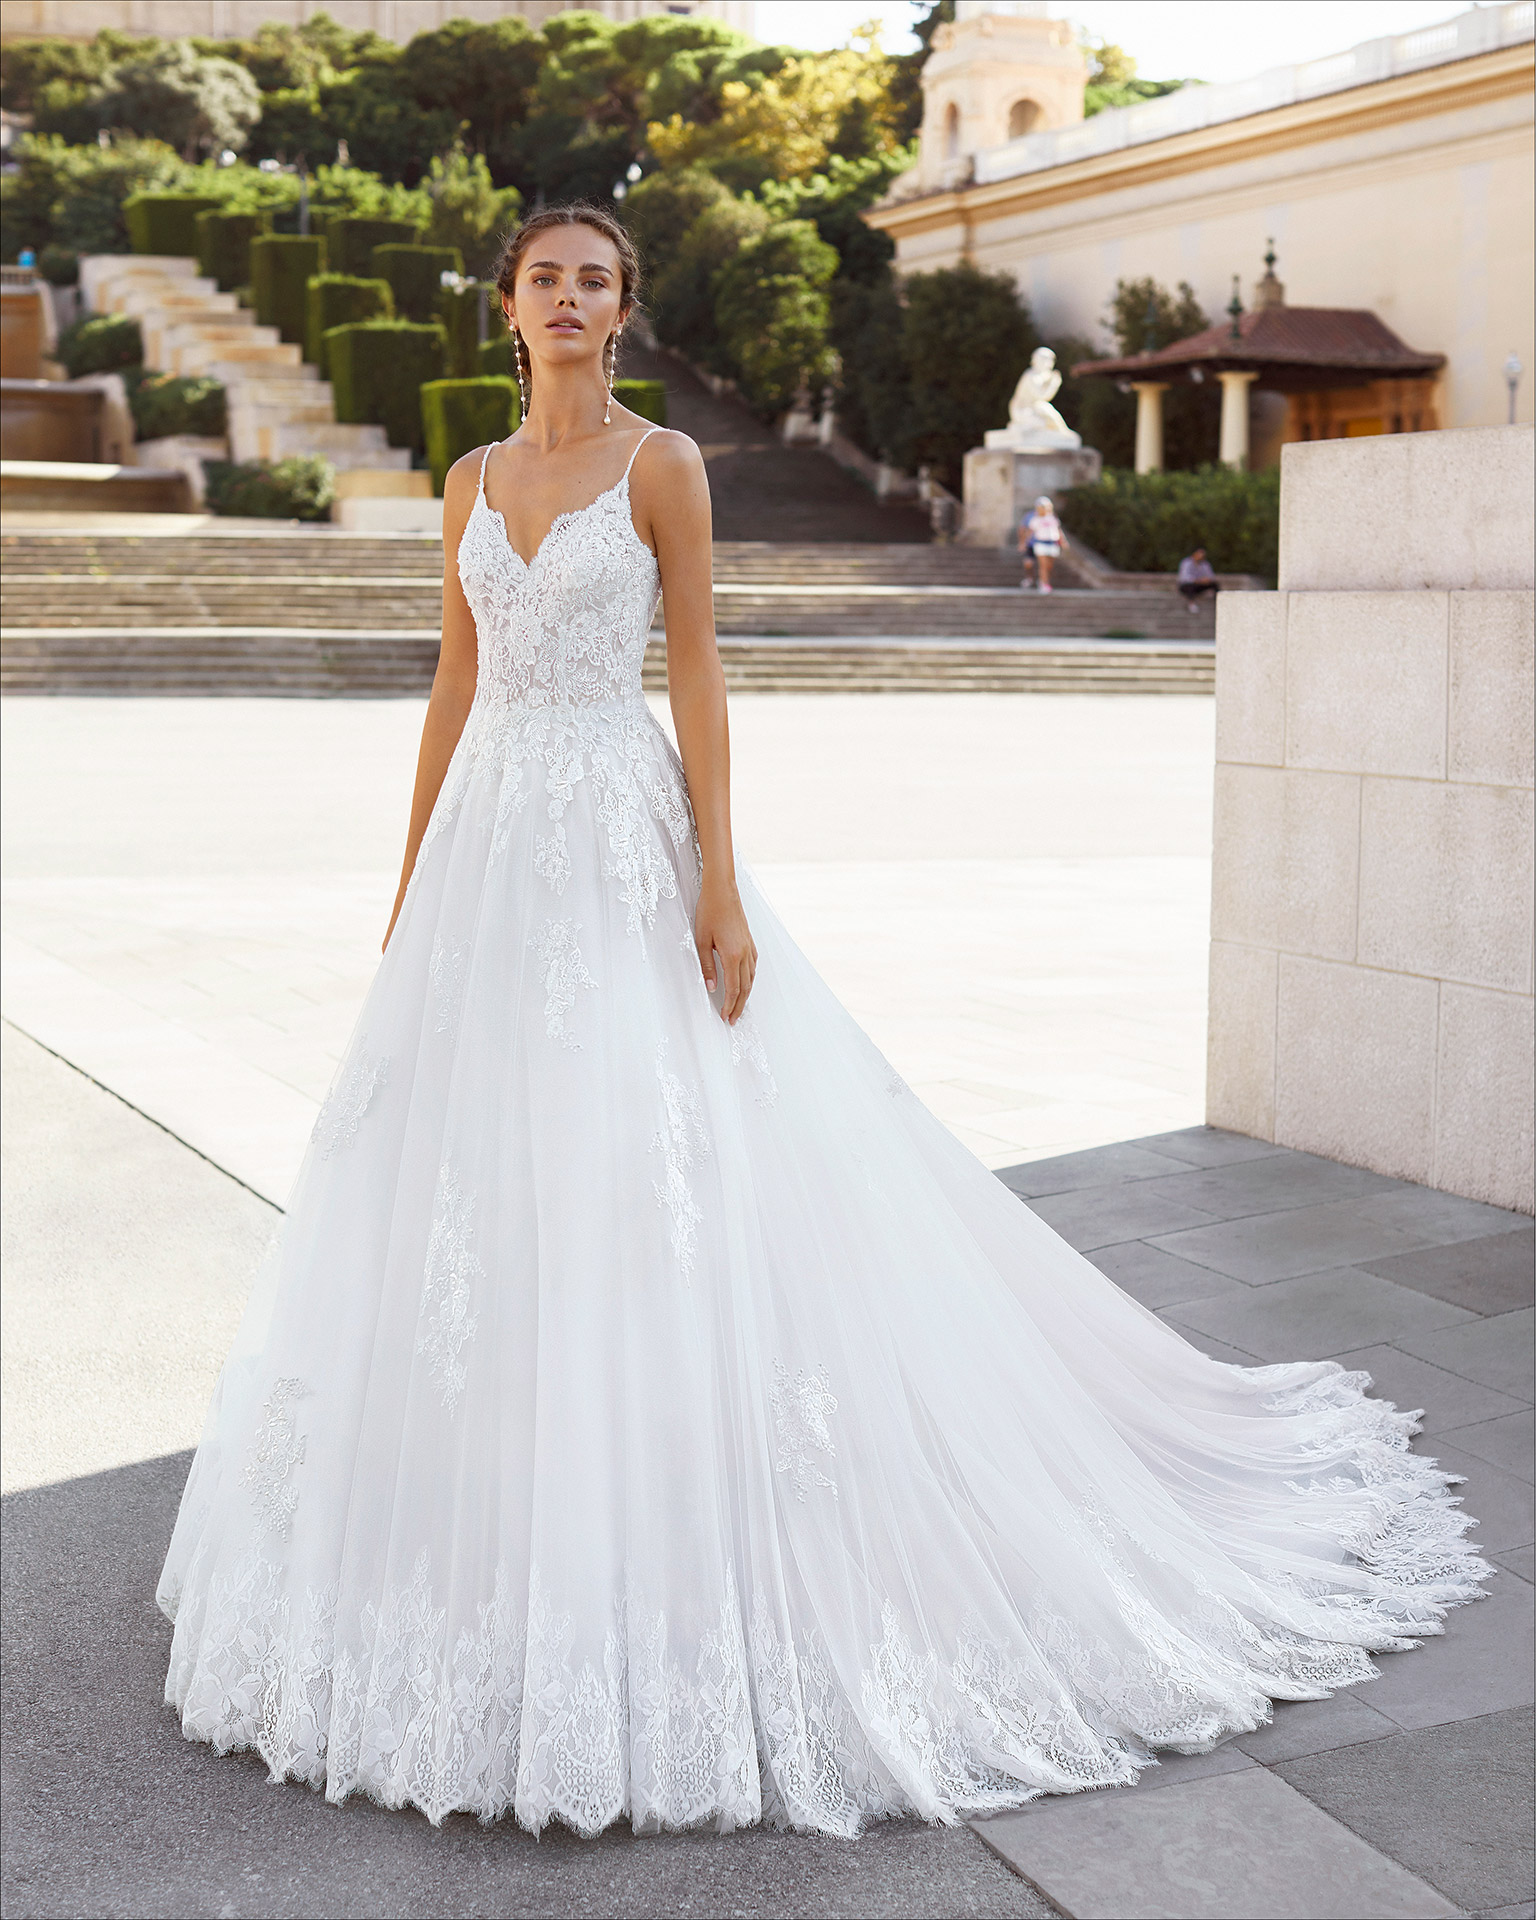 Romantic-style wedding dress in tulle and beaded lace. V-neckline and low back with spaghetti shoulder straps. 2021  Collection.